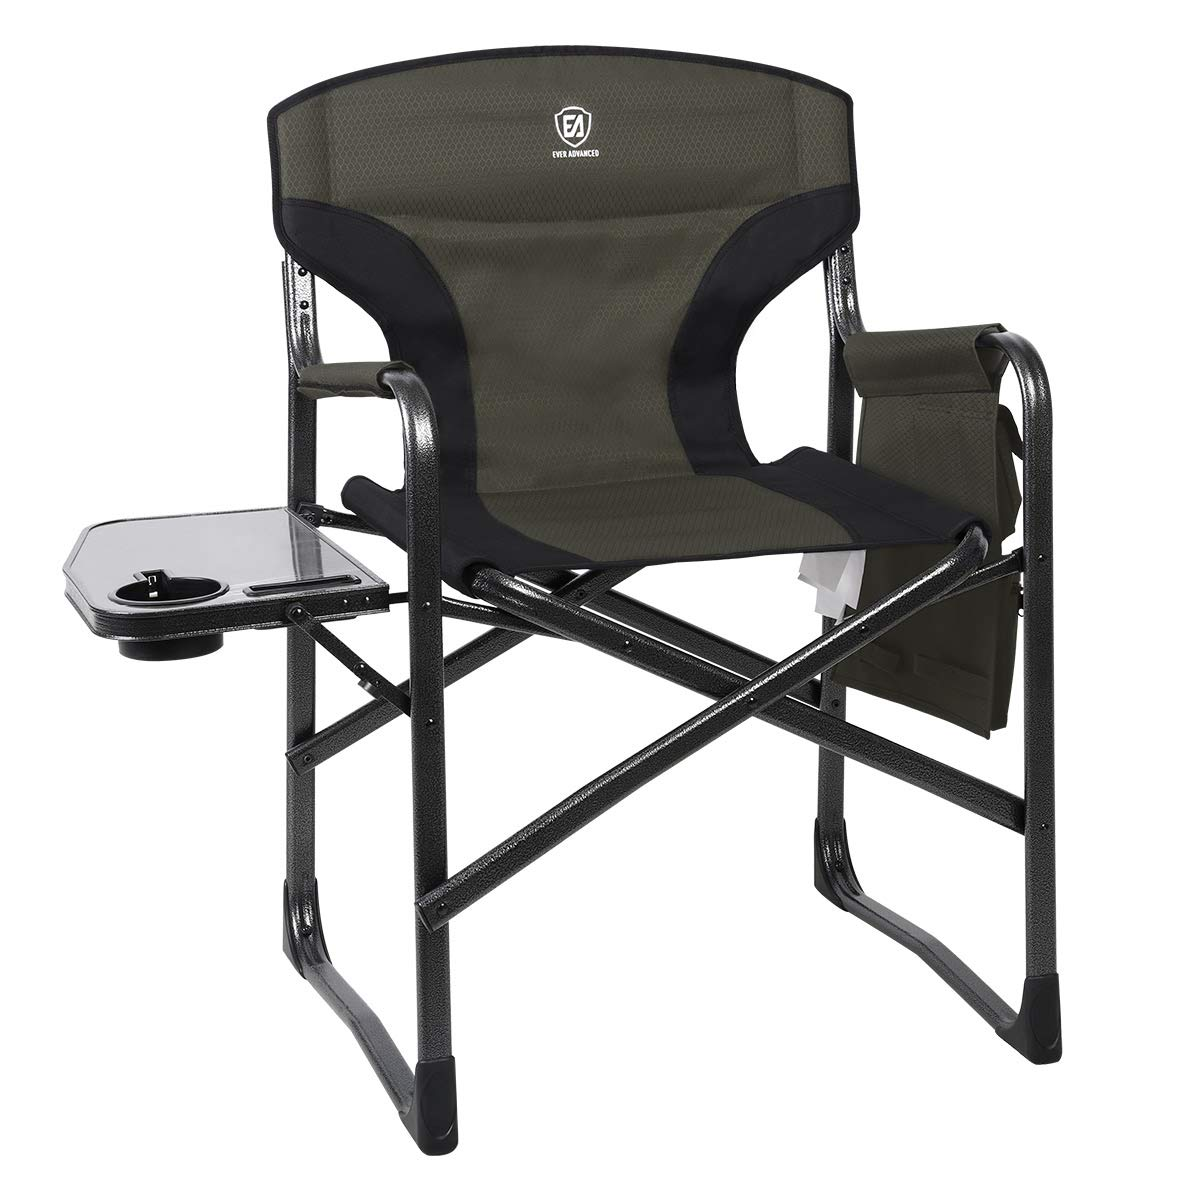 EVER ADVANCED Full Back Aluminum Folding Directors Chair with Side Table and Storage Pouch Heavy Duty 350LBS by EVER ADVANCED